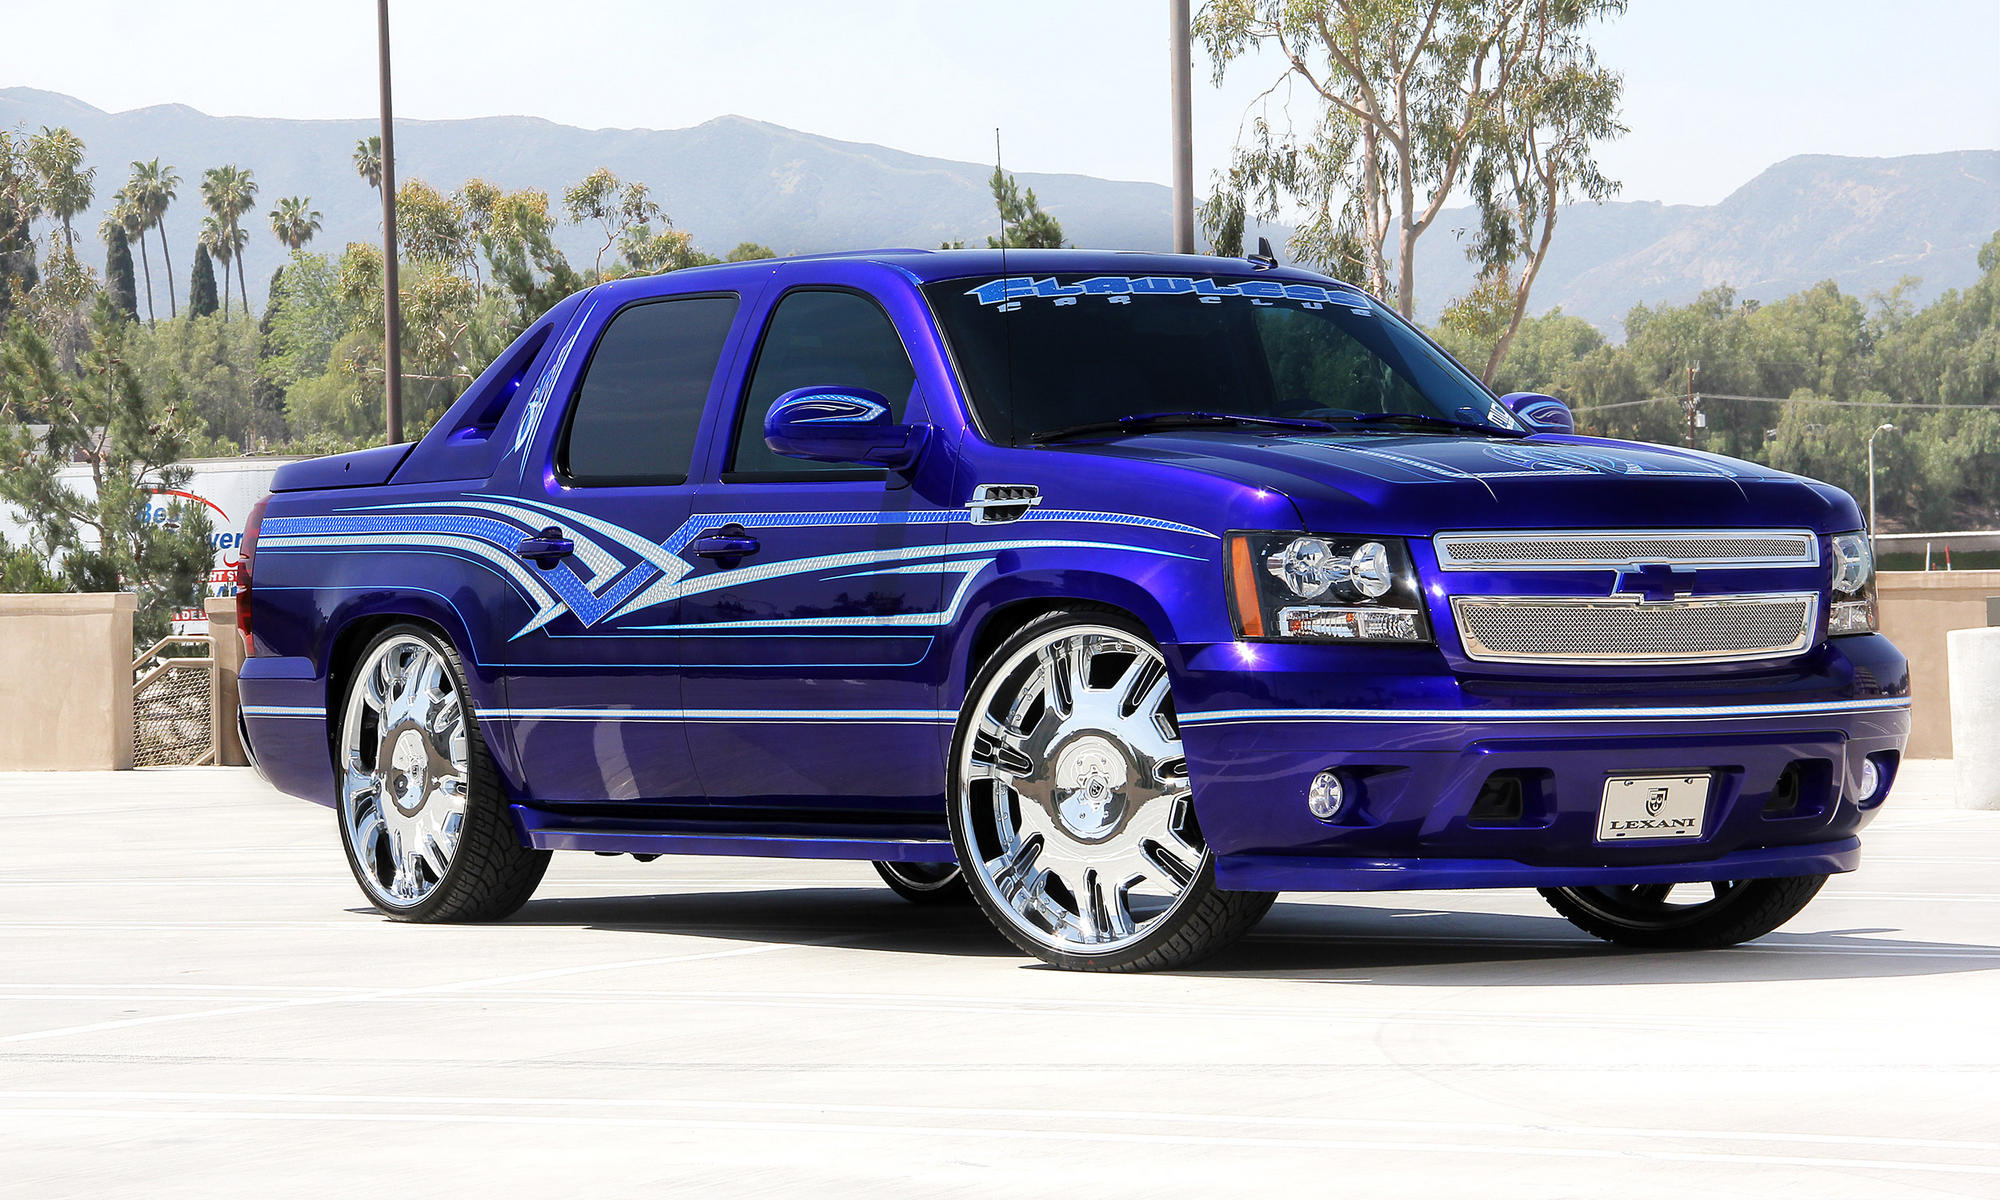 Blue-custom-Chevy-Avalanche-with-chrome-radiant-wheels-wallpaper-wp4604315-2